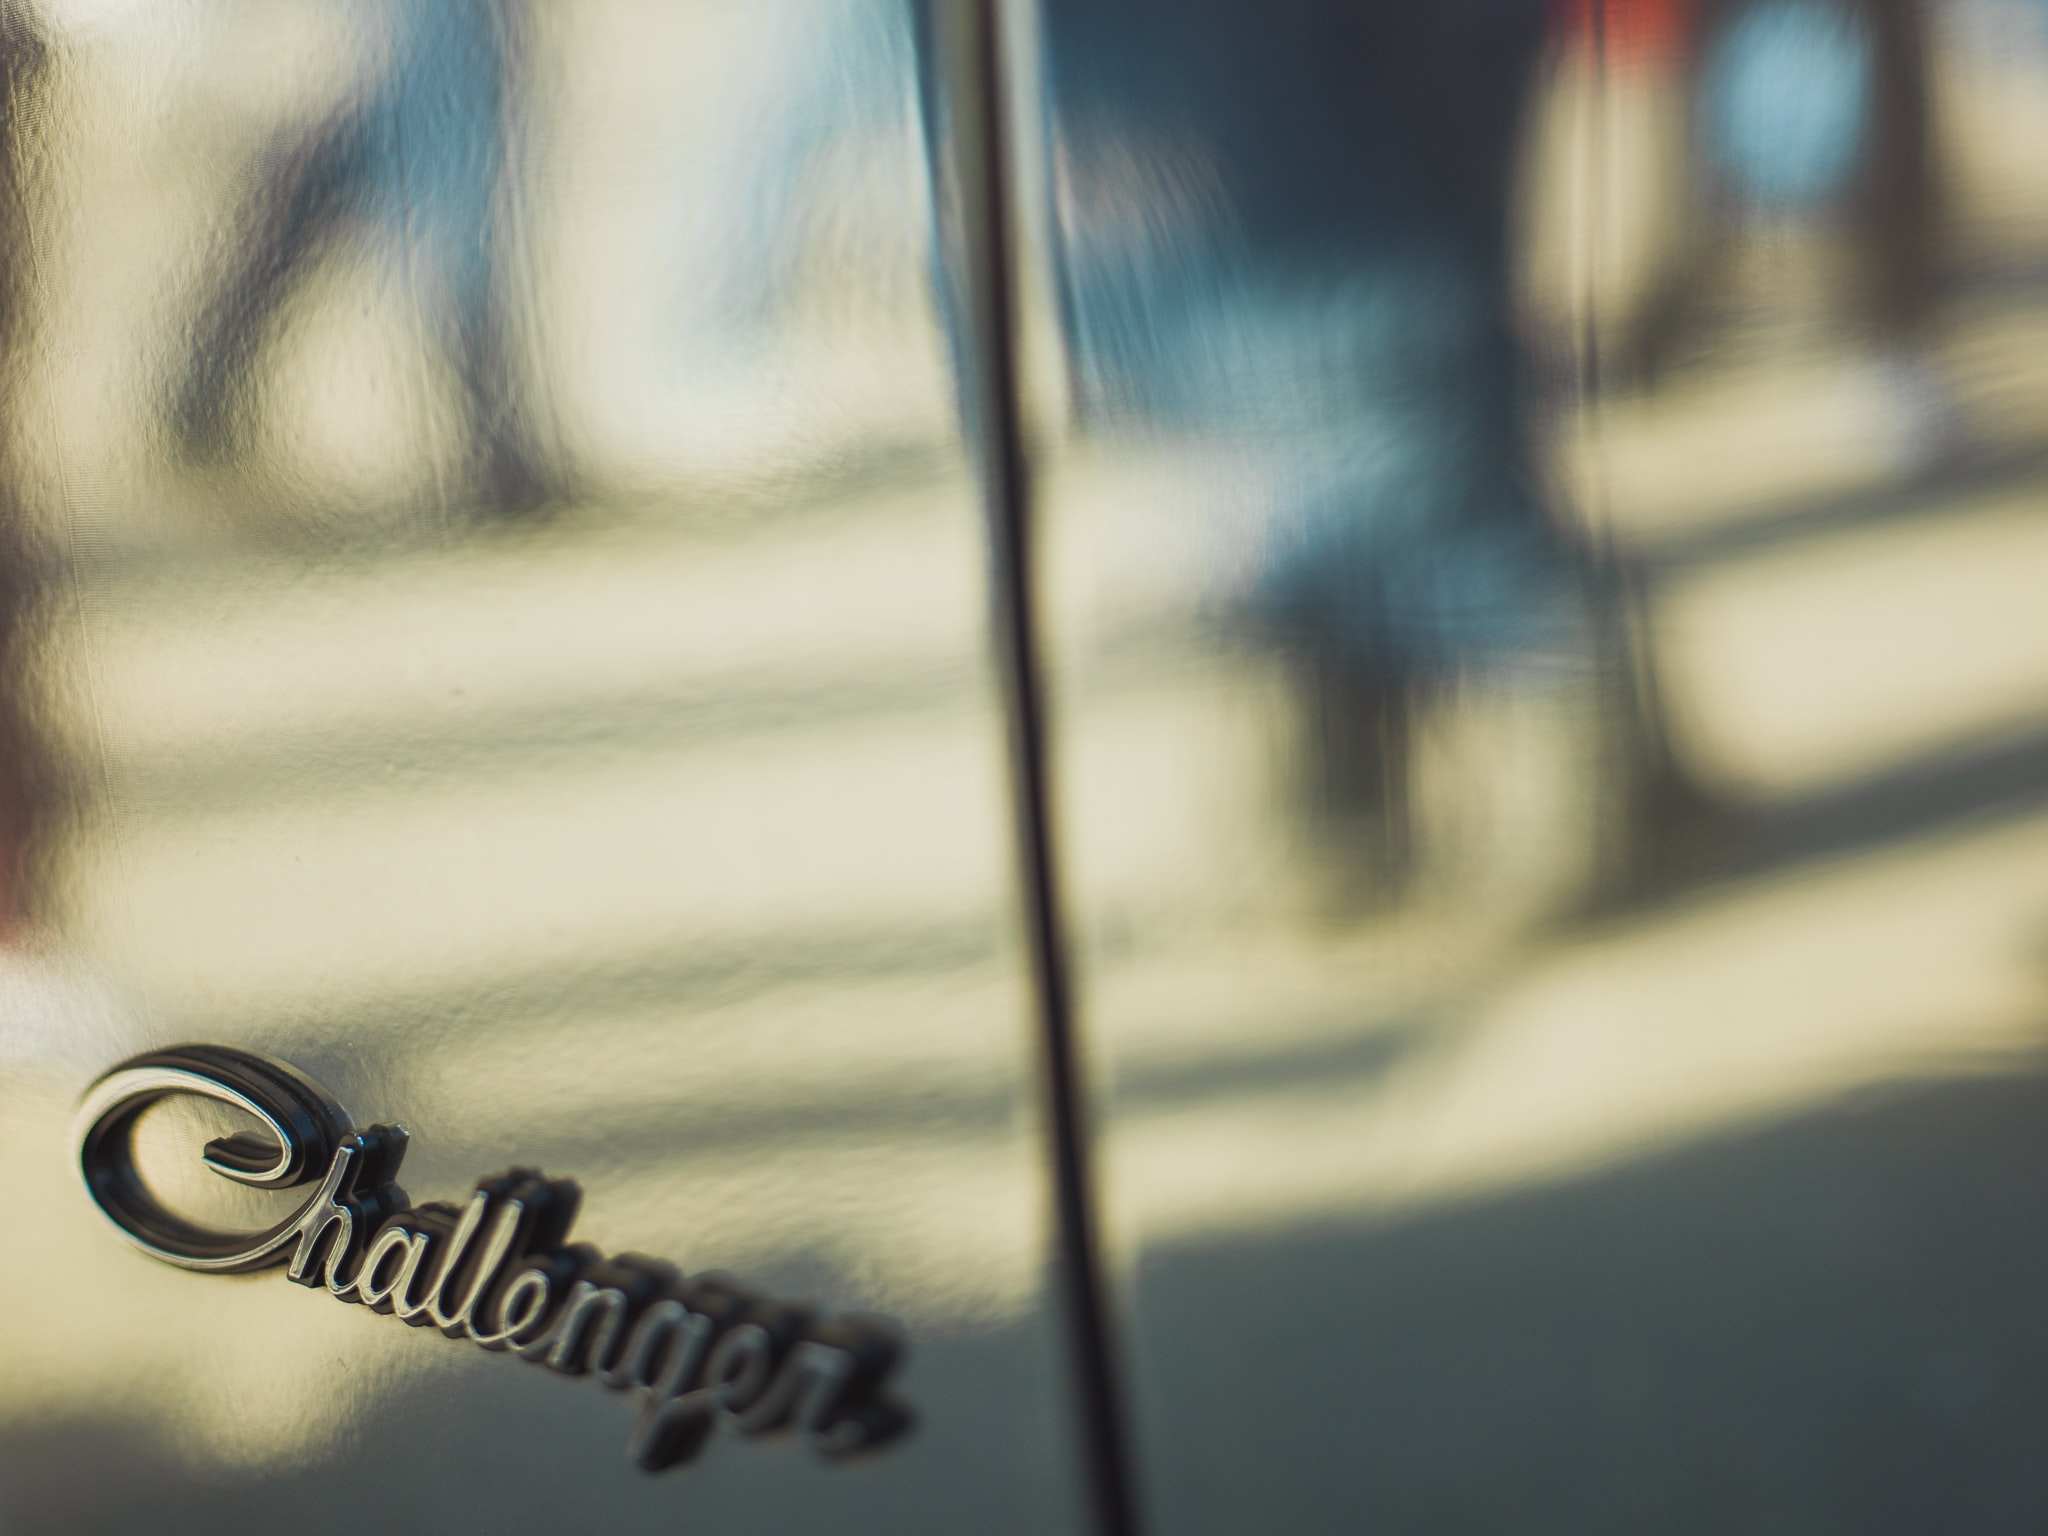 shallow focus photography of silver Challenger emblem